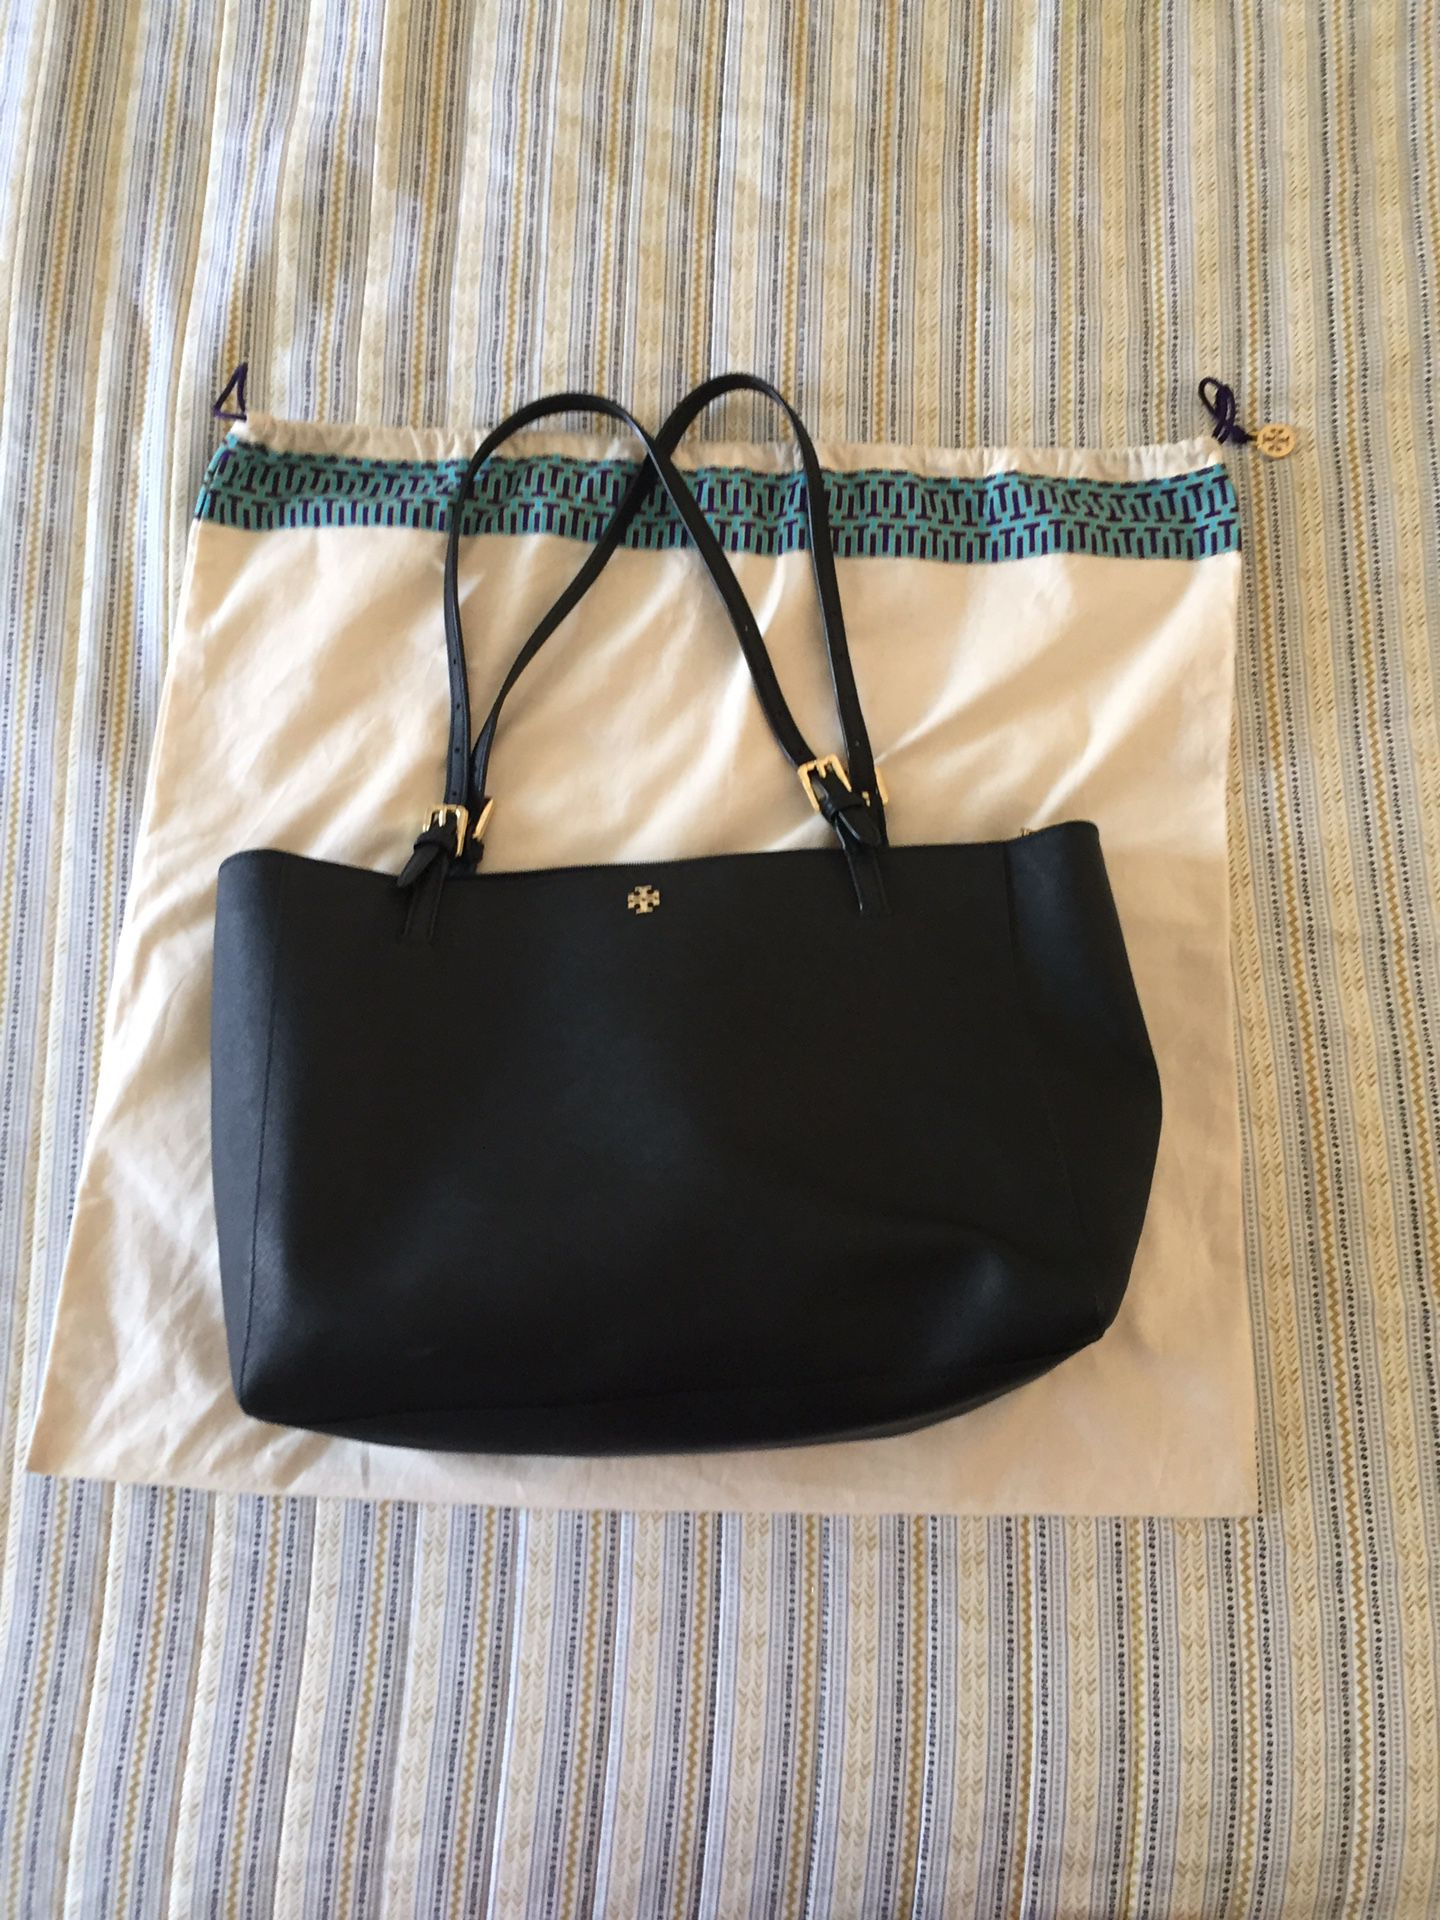 Tory Burch — Large Black, Buckled York Tote DUST BAG INCLUDED